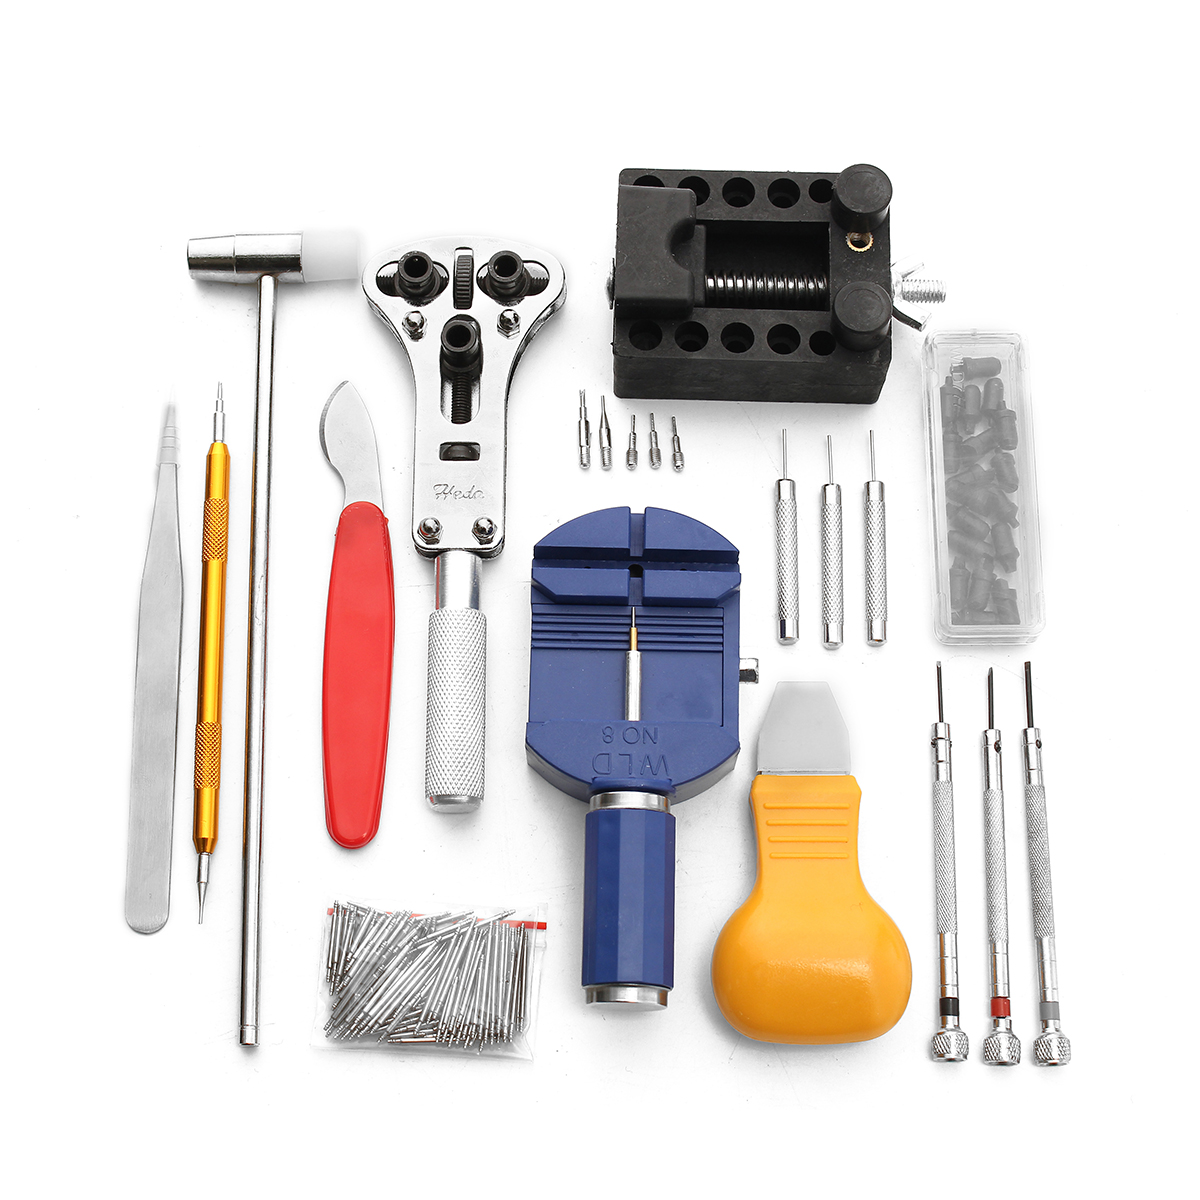 Baban 147Pcs Professional Watch Repair Tool Kit Watch Opener Pin Link Remover With Carrying Case